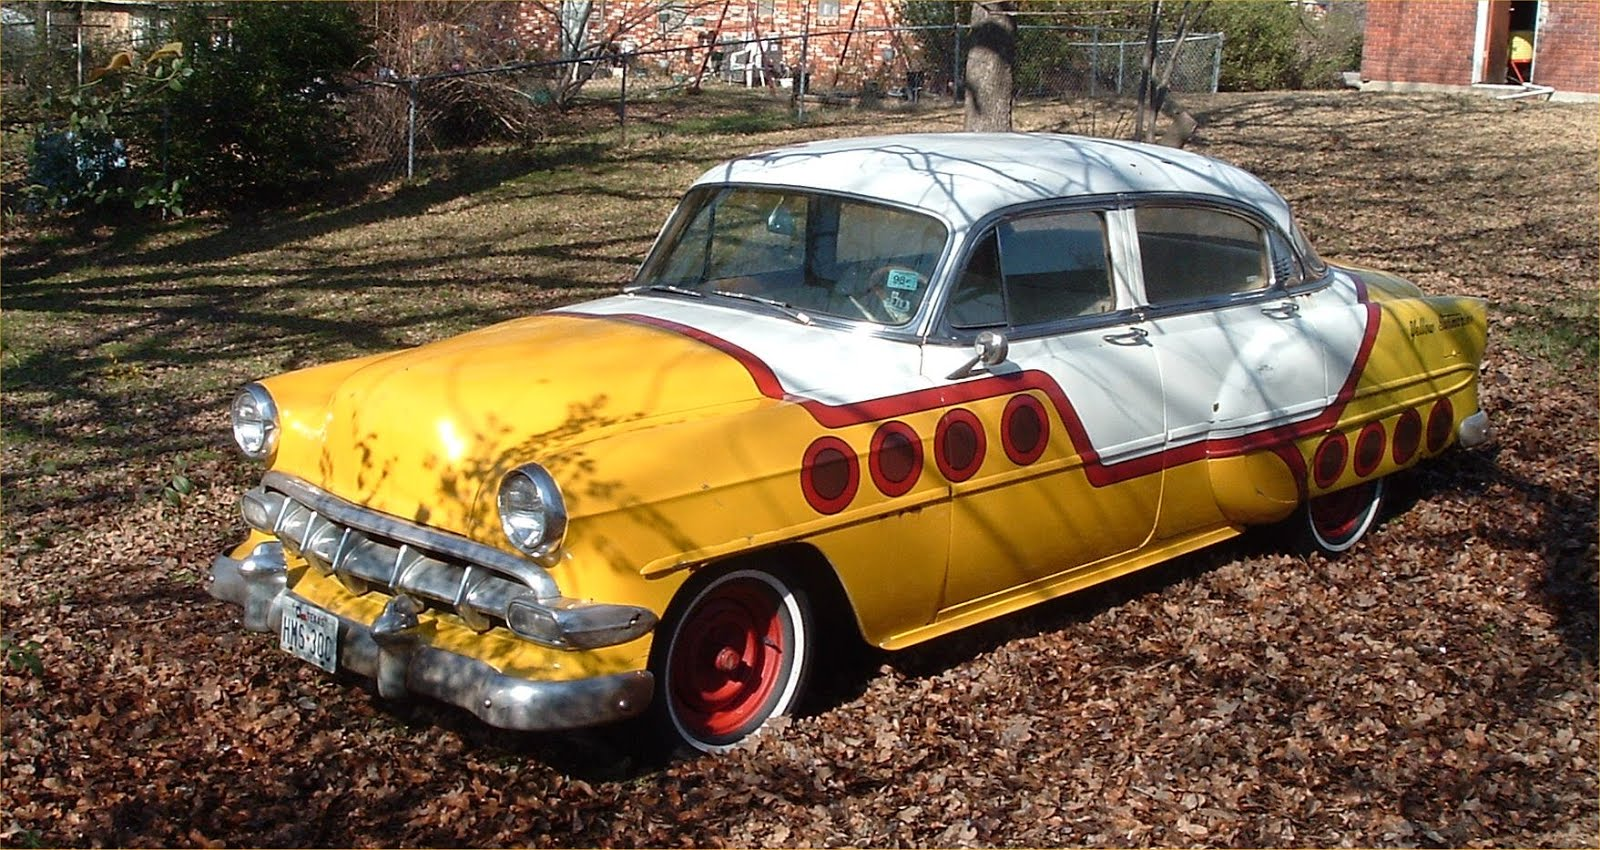 Donsdeals Blog Hot Rod Cars Ingenuity In Action 1959 Nhra Help Old Style Chrome Clamp On Turn Signal The Hamb Above Pics Are Me And My 1954 Chevy Belair I Sold Her Several Years Ago But She Was One Of Favorite All Factory Except Paint Job